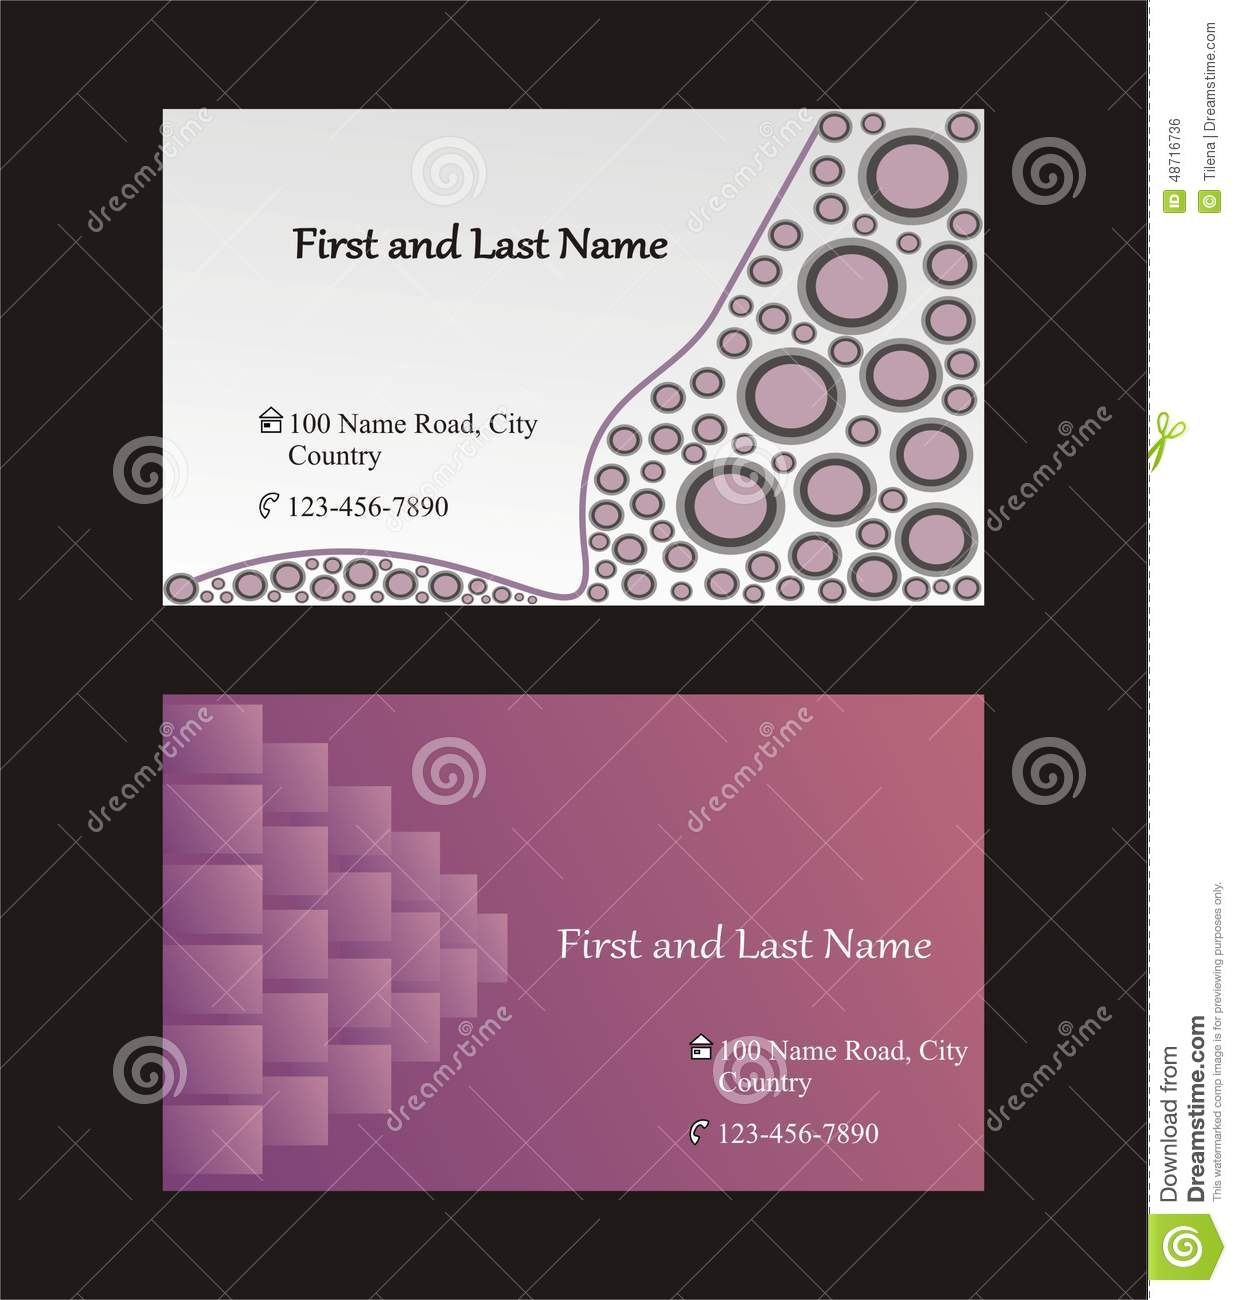 Single Sided Business Cards Template Stock Vector Illustration - Two sided business card template